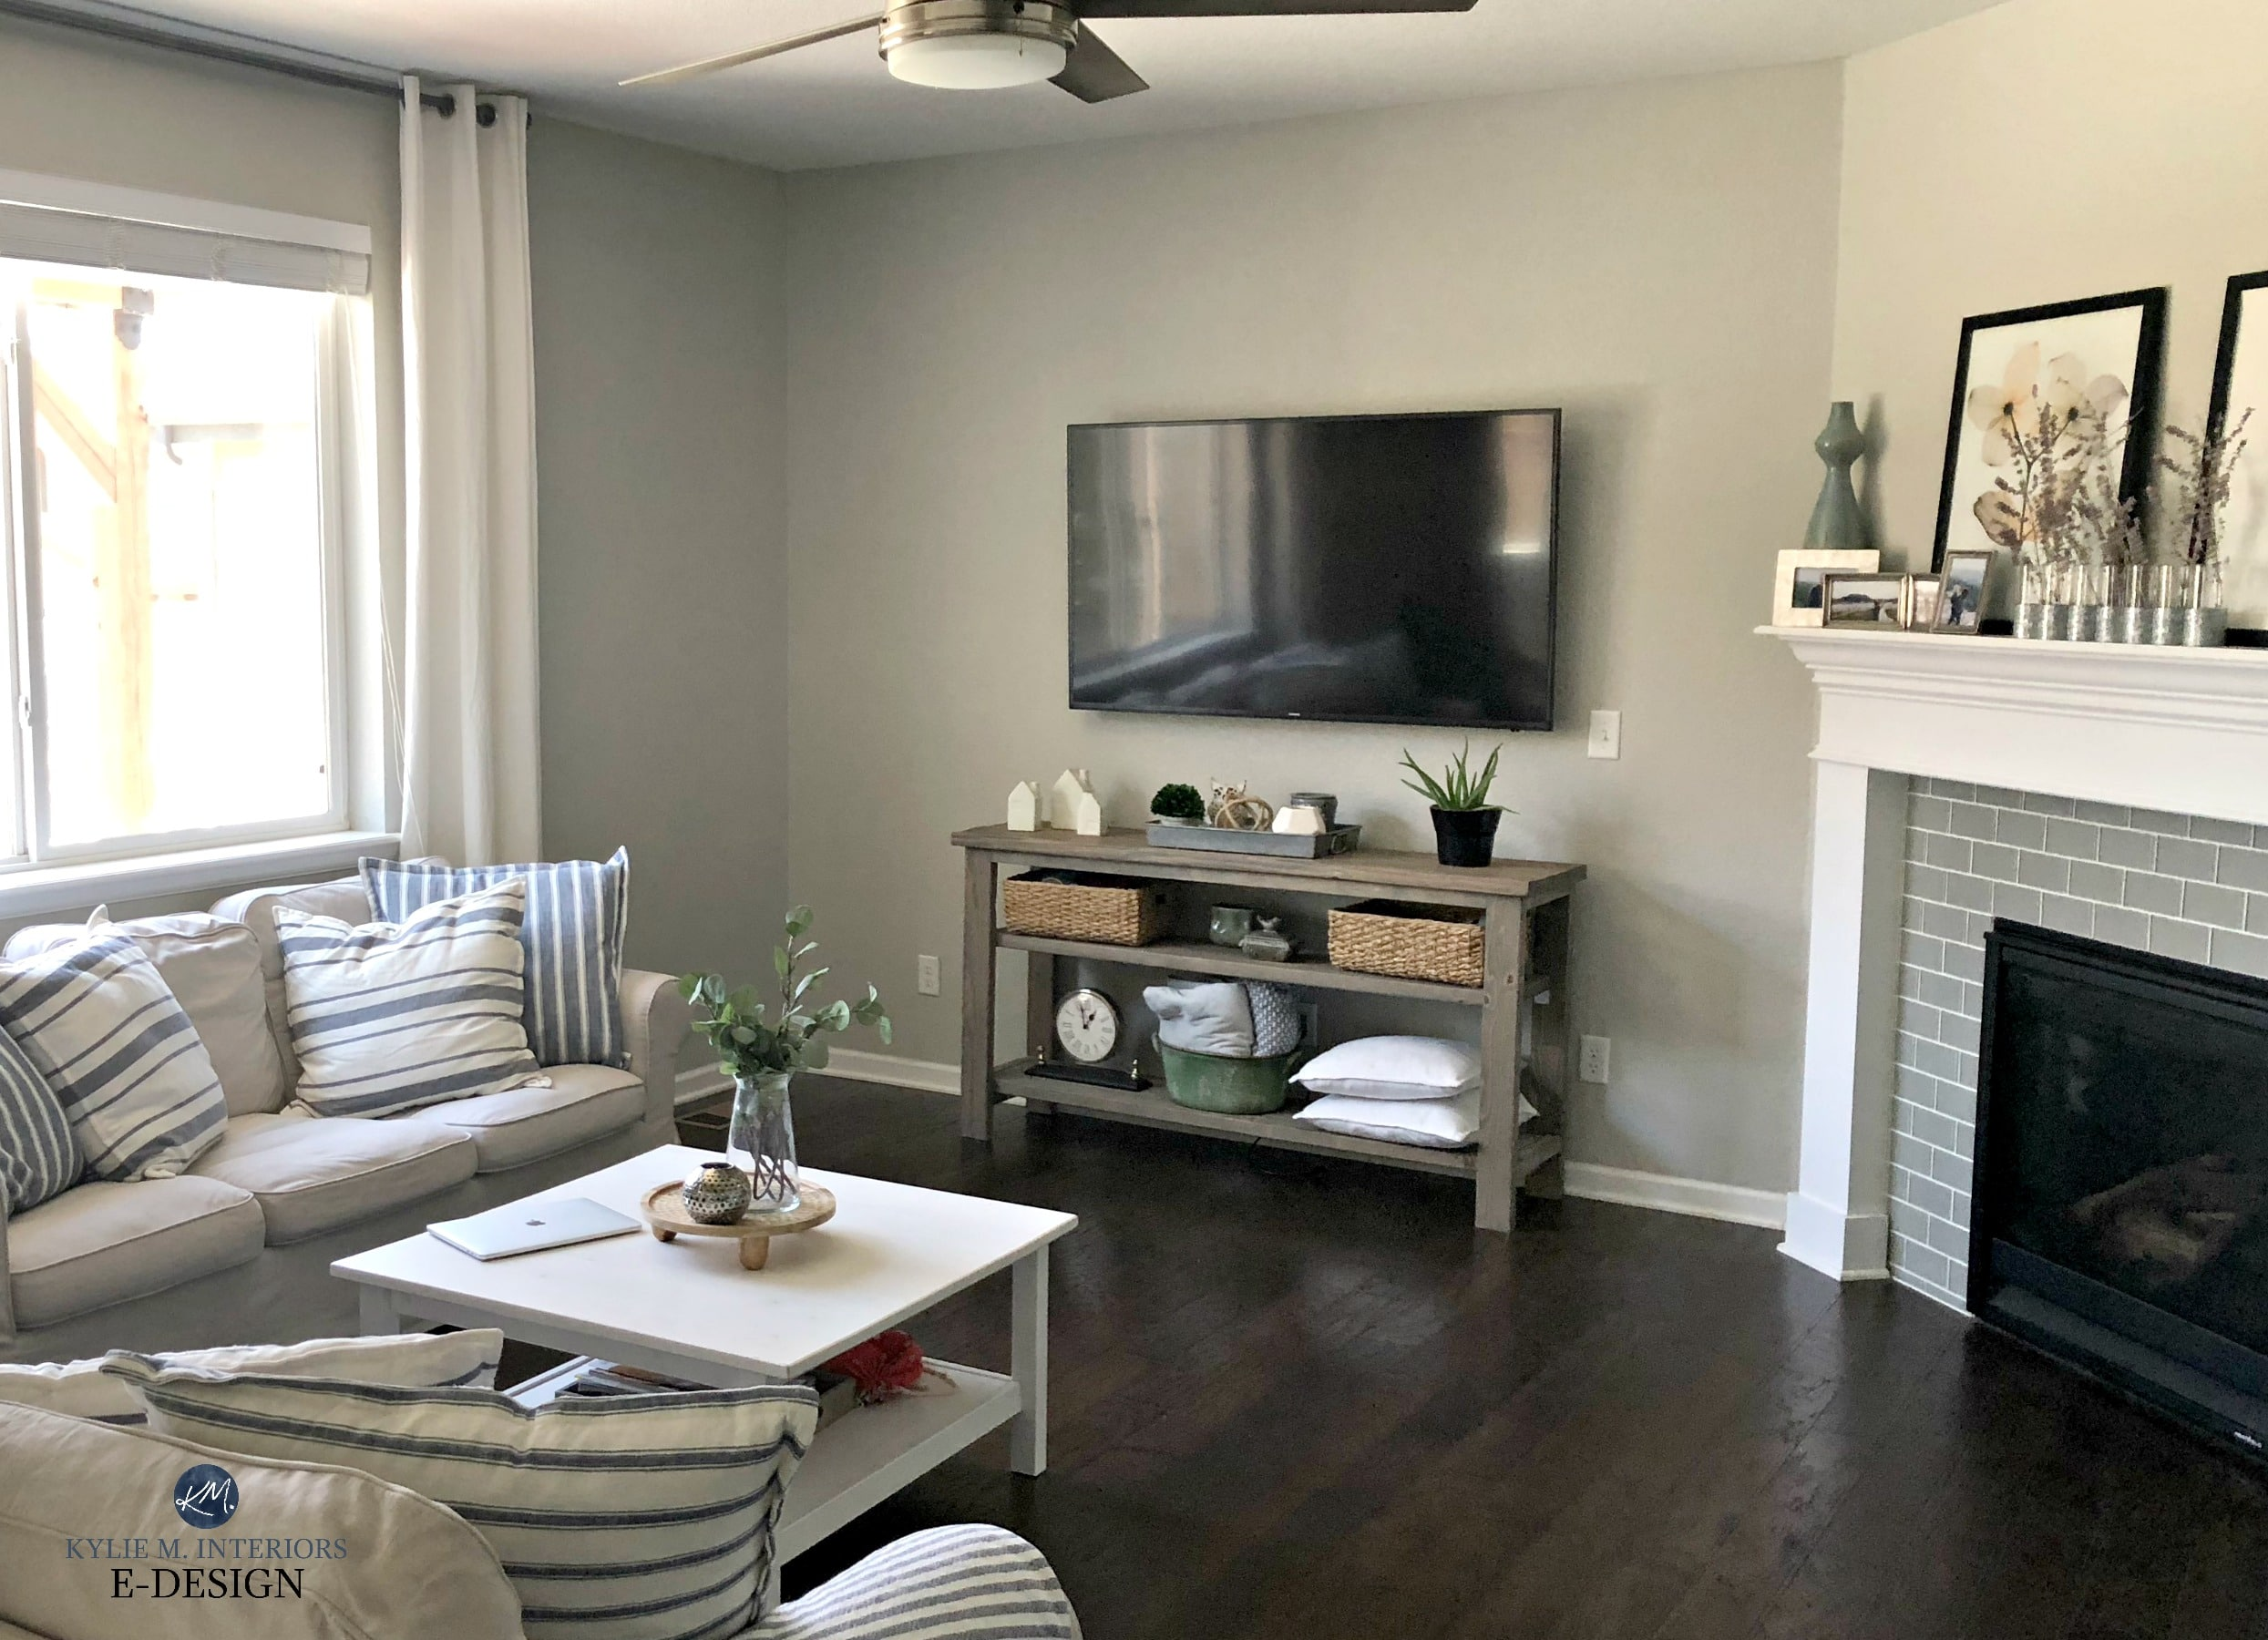 images of wood floors in living rooms christmas decorating ideas for small room sherwin williams repose gray family or dark flooring kylie m interiors edesign online paint consultant client before photo